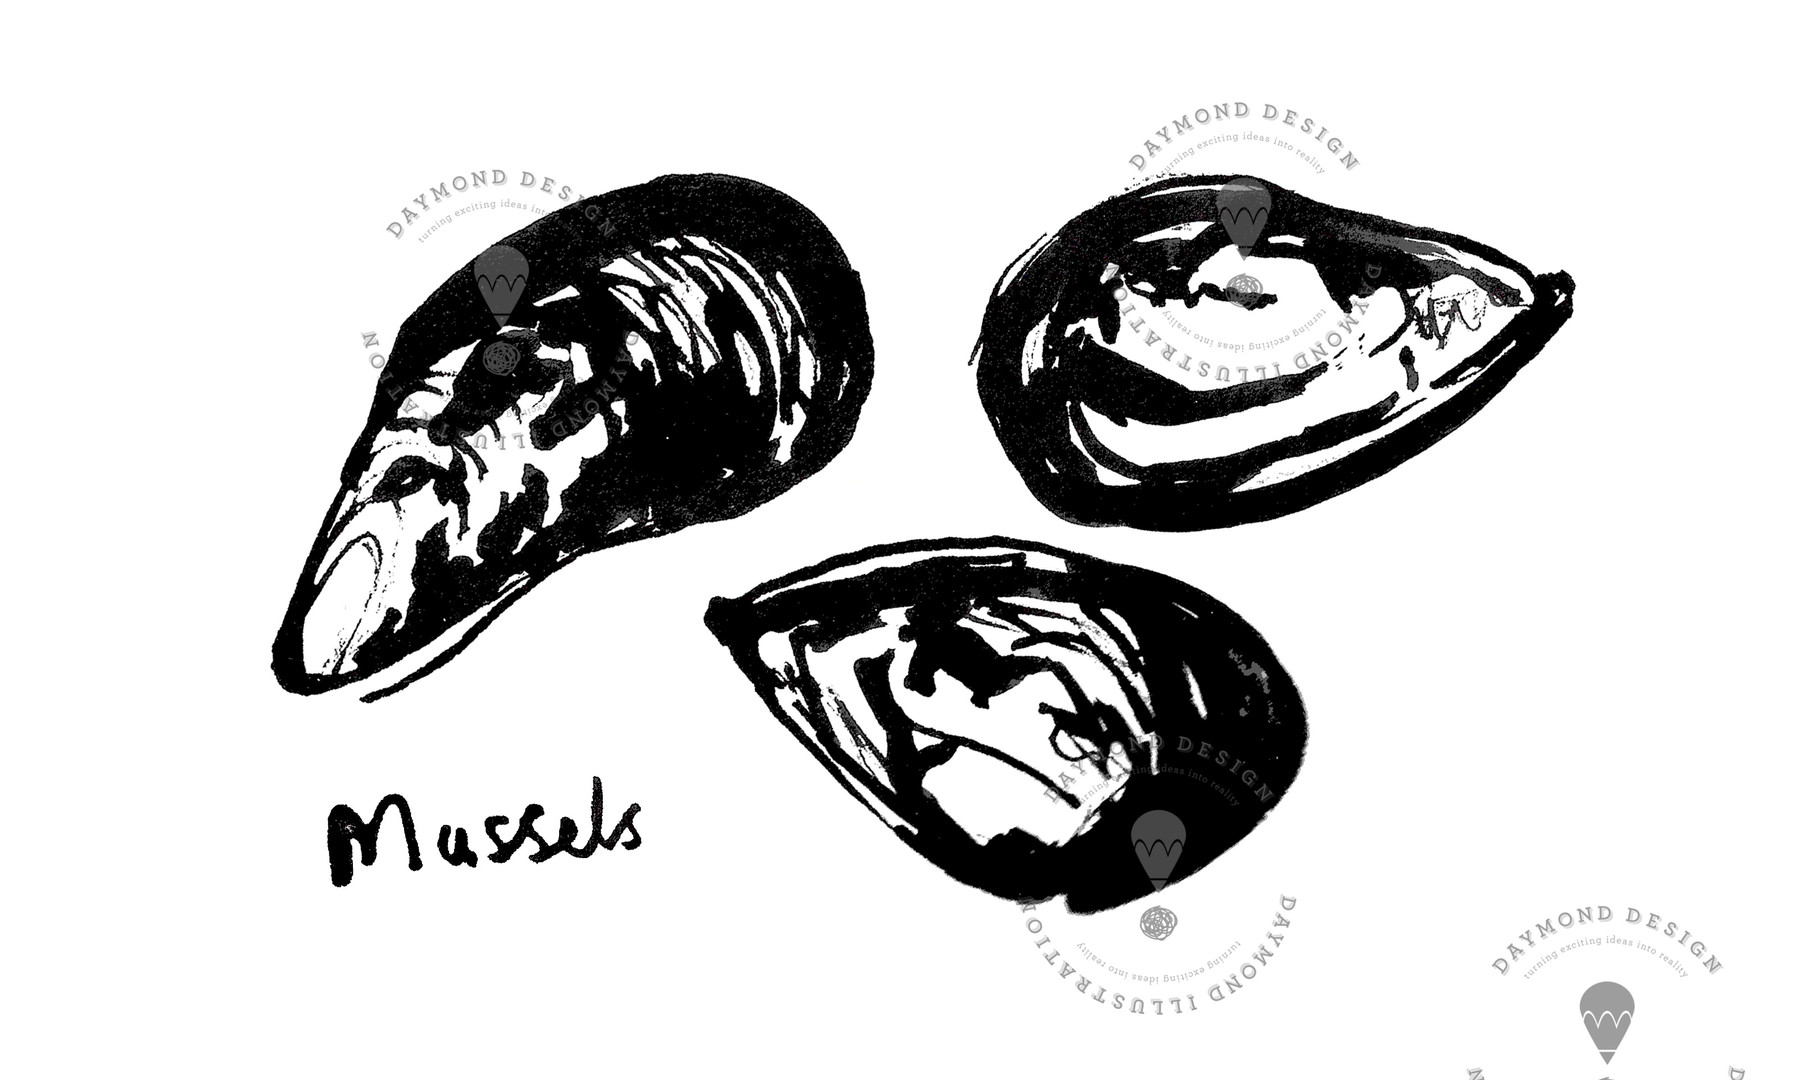 mussels brush ink B&W food illustration of seafood by Jenny Daymond Design and Illustration